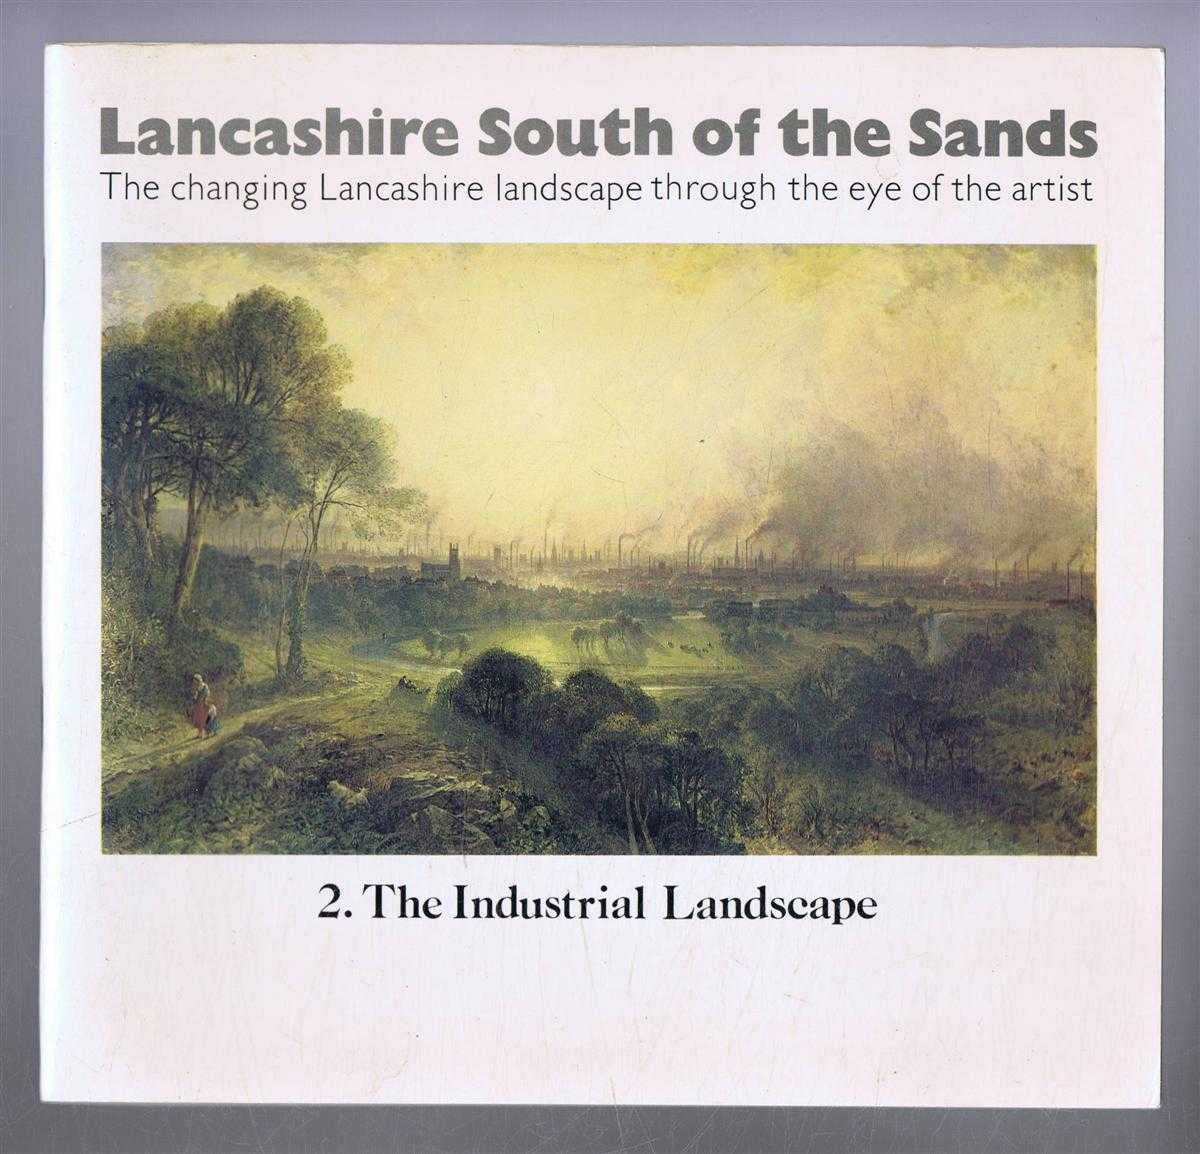 Lancashire South of the Sands, The Changing Lancashire landscape through the eye of the artist. 2. The Industrial Landscape, foreword by John D Blundell, Museum Services of Blackburn, Burnley and Lancashire County